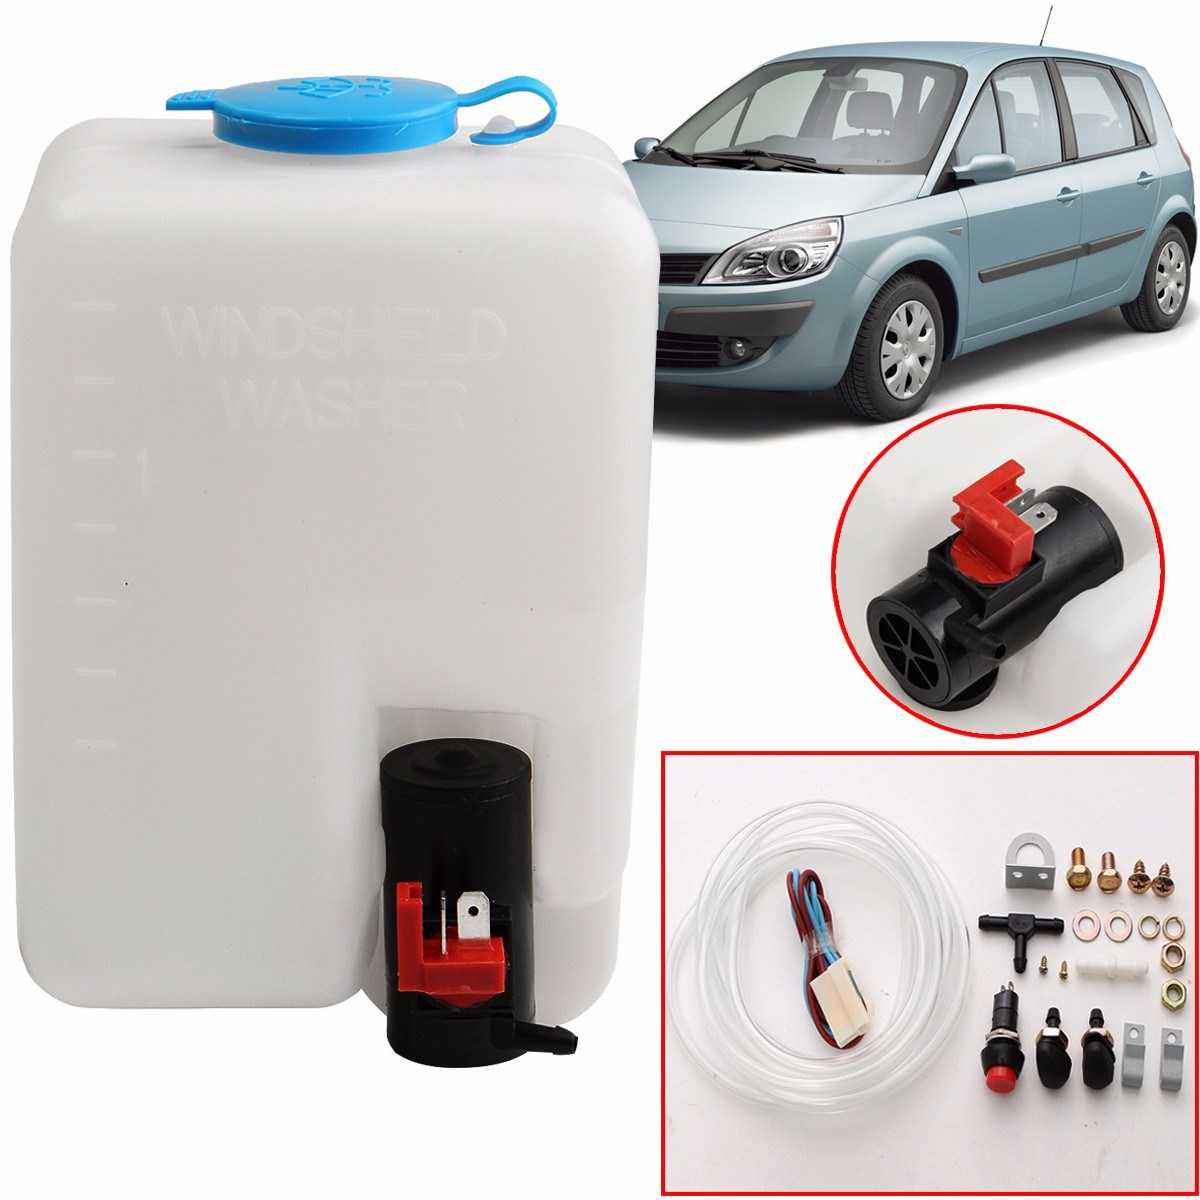 12v Universal Car Windscreen Washer Bottle Kit With Pump Jet Button Hyundai Getz Wiring Diagram 18l Windshield Reservoir Switch For Classic Cars